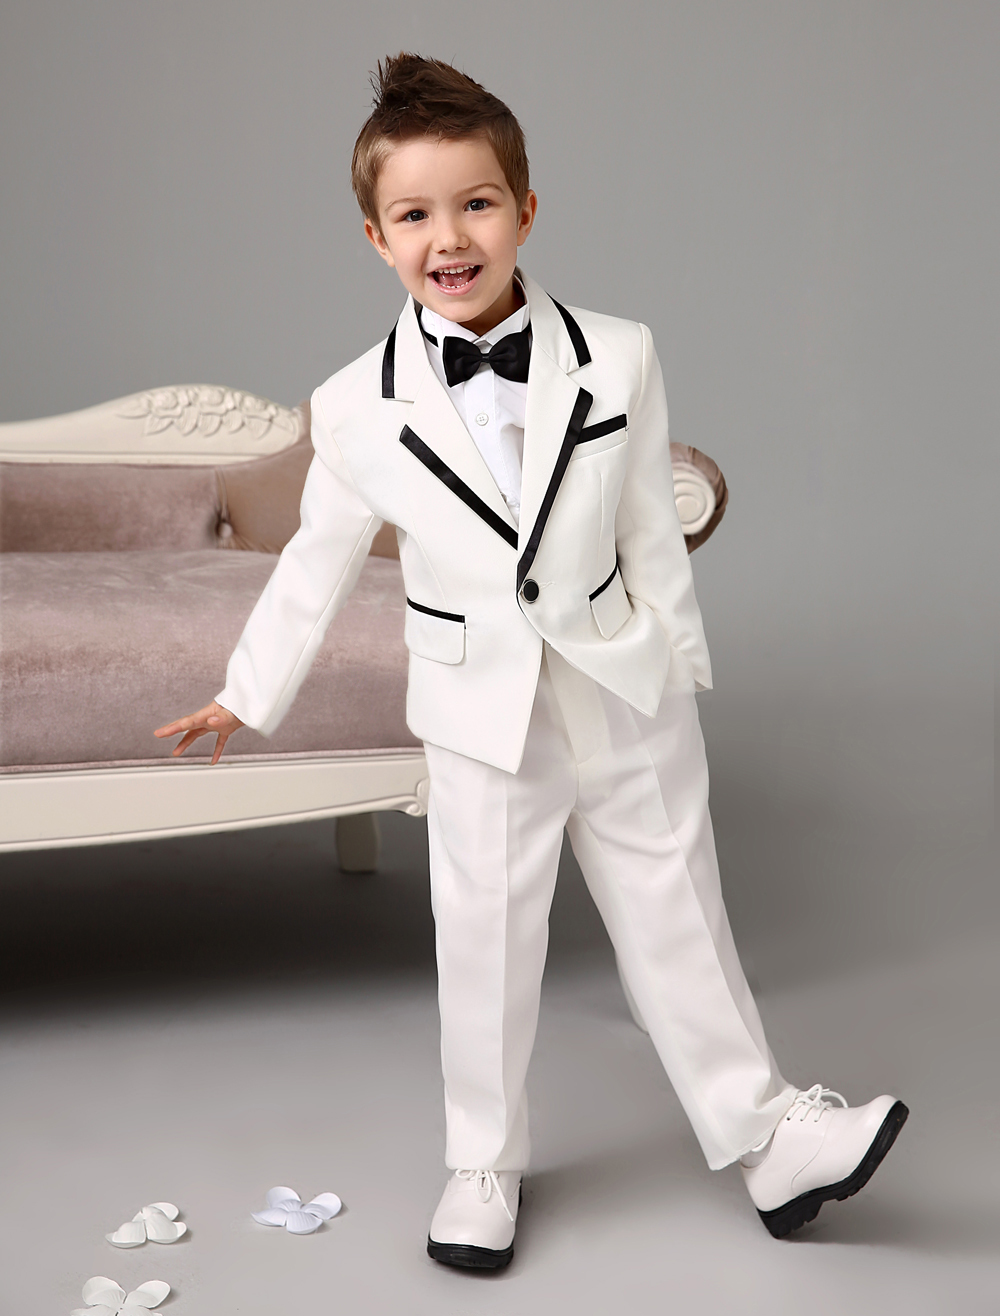 Boys Tuxedo BLACK Ring Bearer Infant Toddler Children Teen Tuxedos; Boy's Suits and First Communion First Communion Zoom. Boys Tuxedo BLACK Ring Bearer Infant Toddler Children Teen Tuxedos. SKU: BoysTux. Volume Discount Available Pick a Color and Size to See the Discount Boys Suit BLACK Infant Toddler Children Teen Suit.